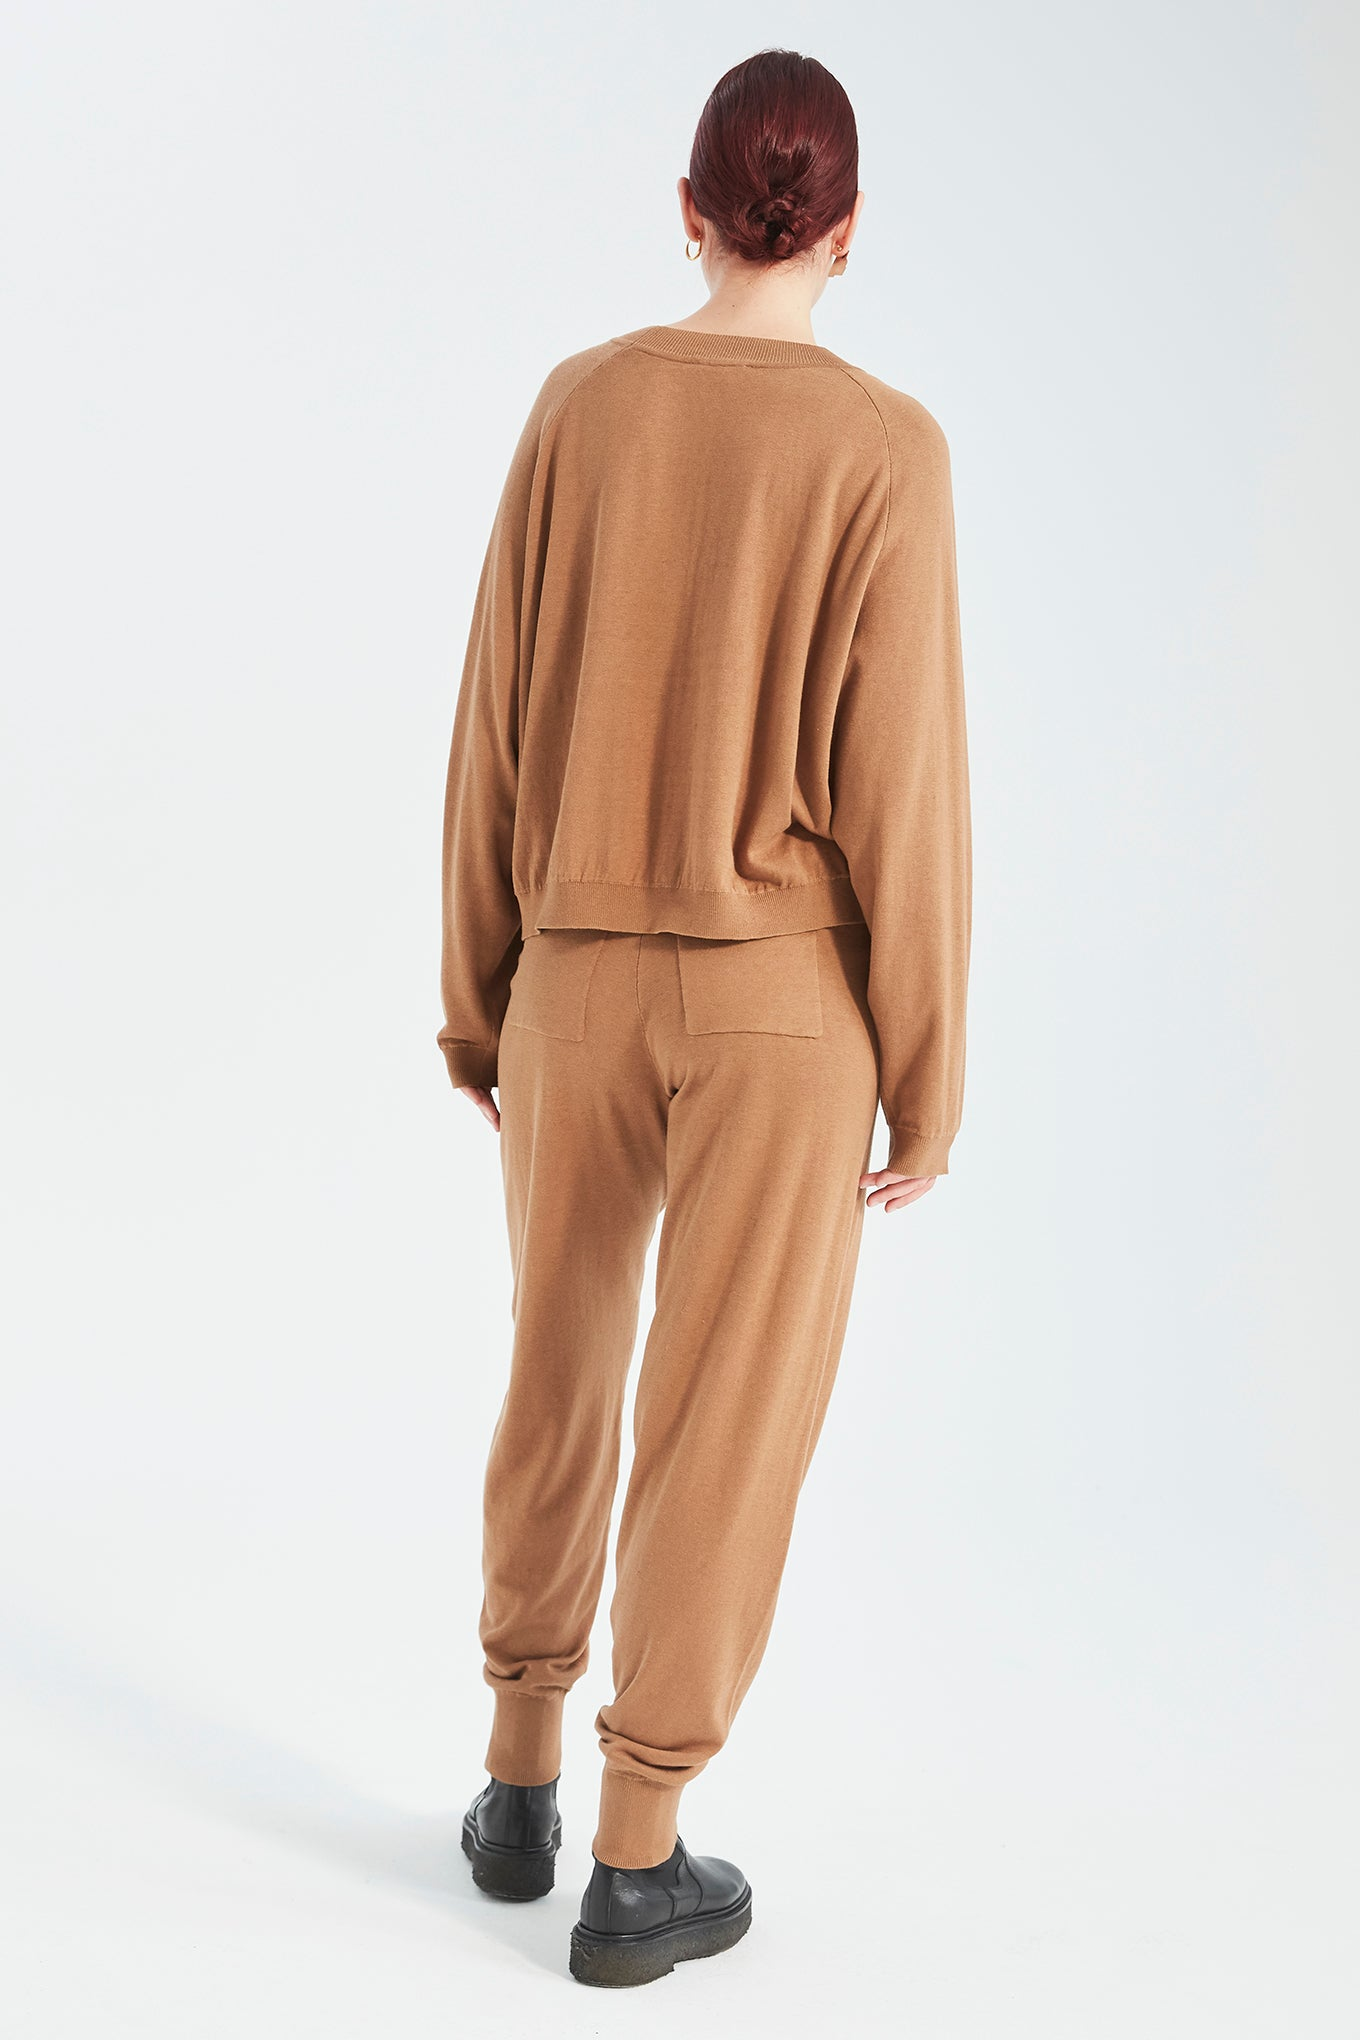 Zana Knit Pants - Milk Chocolate - Silk/Cotton